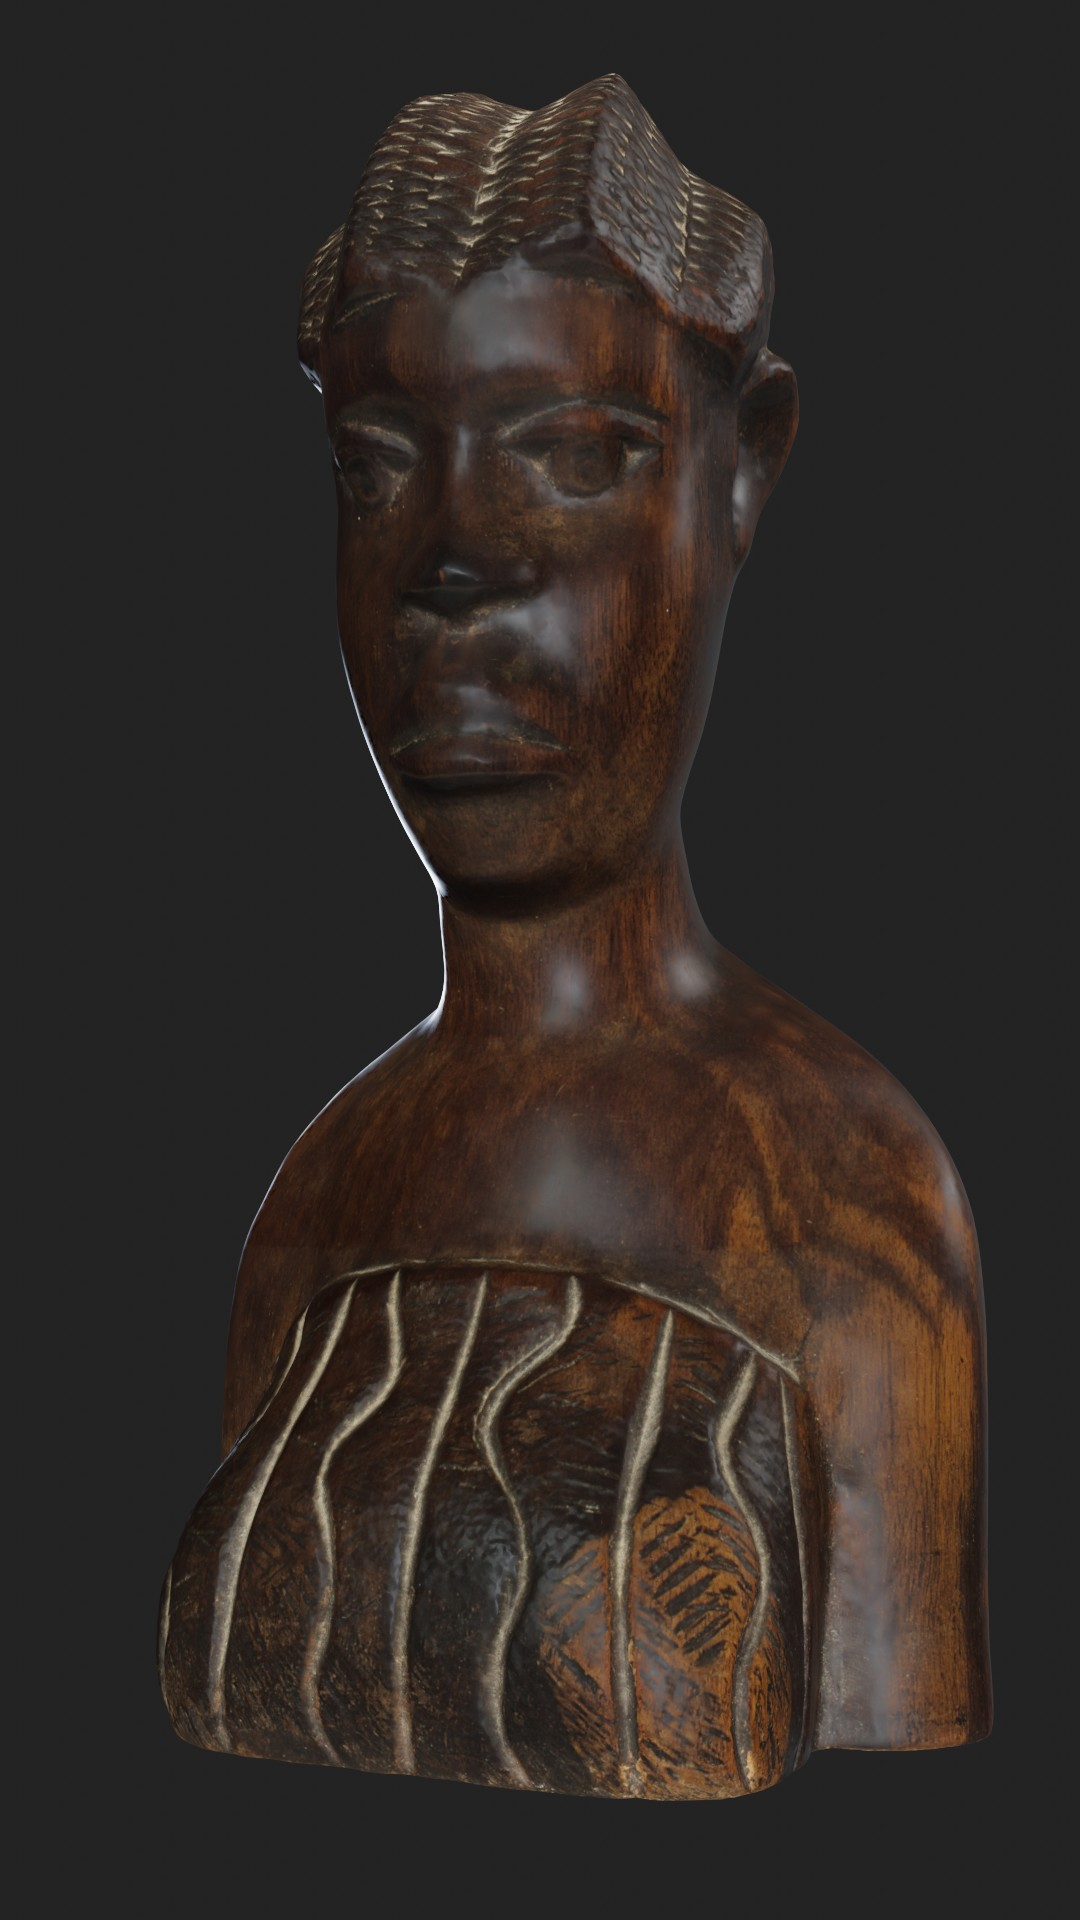 African wooden figurine preview image 1